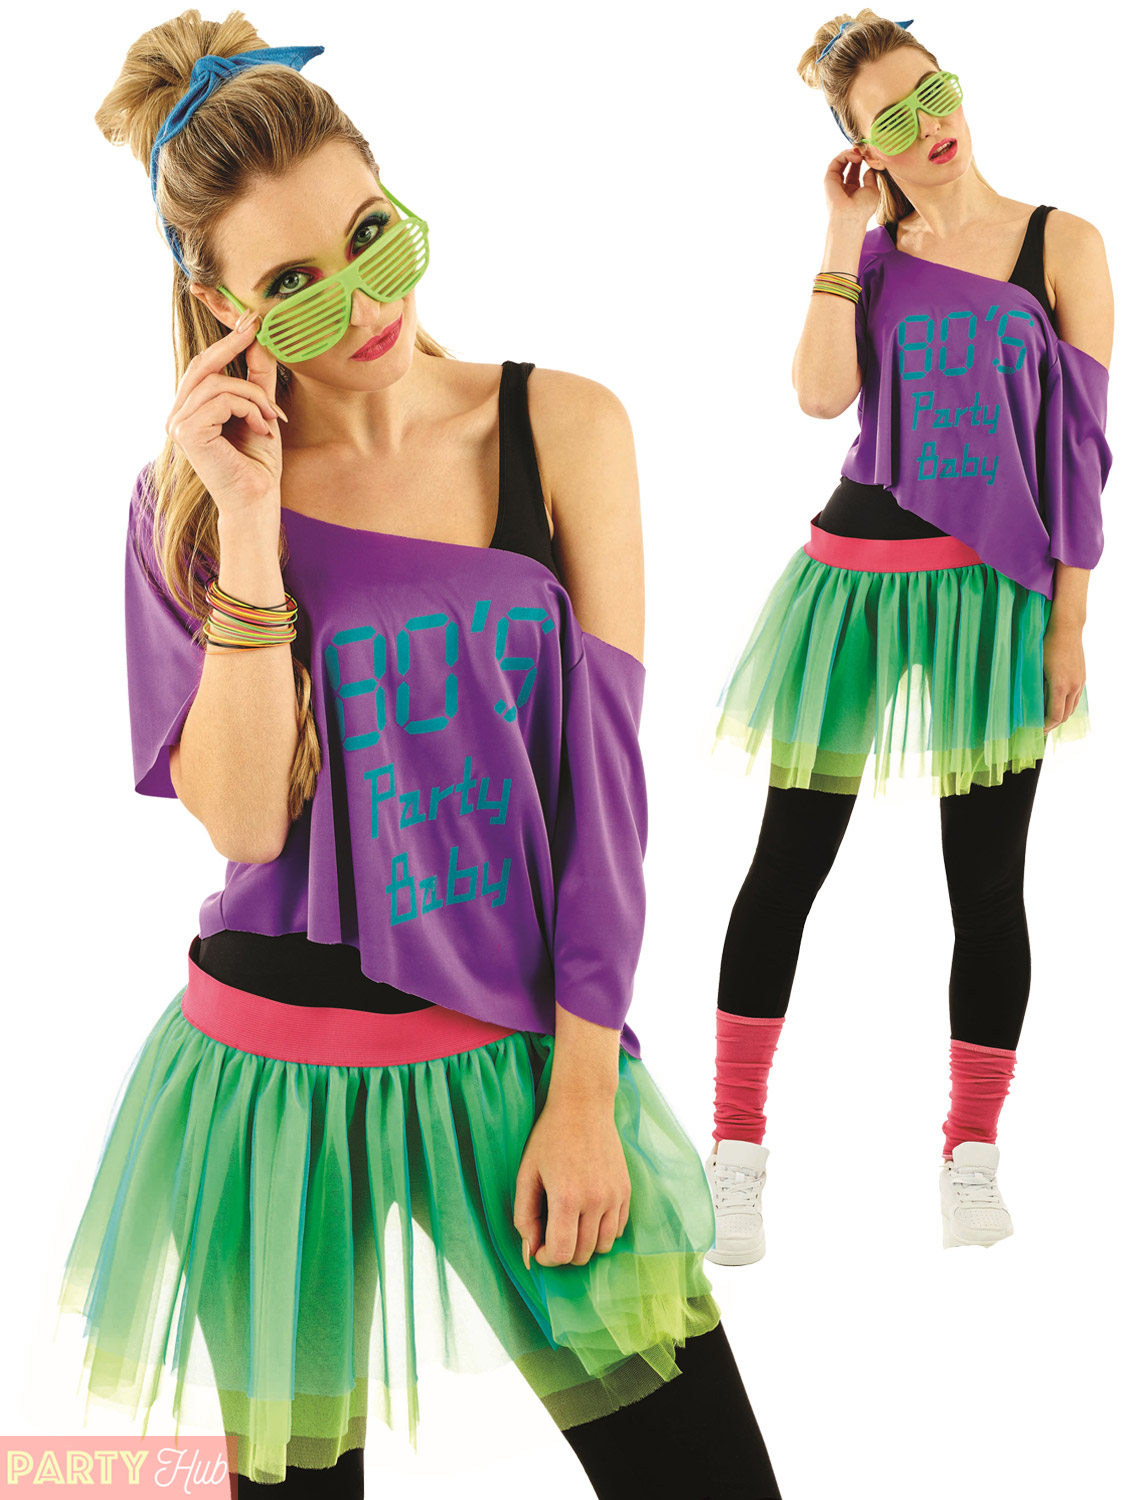 Popular Neon Party DressesBuy Cheap Neon Party Dresses